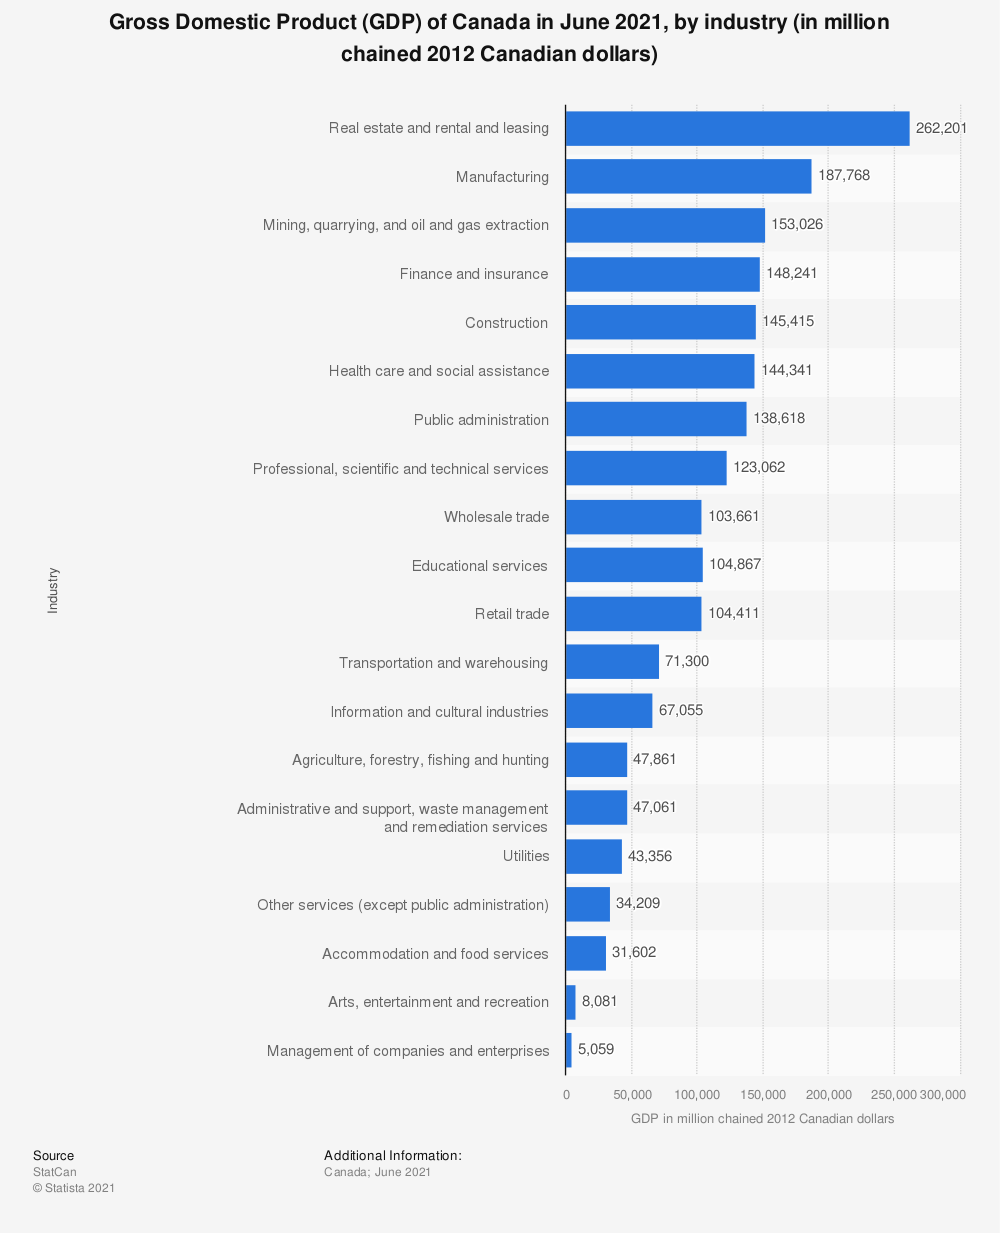 Statistic: Gross Domestic Product (GDP) of Canada in May 2020, by industry (in million chained 2012 Canadian dollars) | Statista